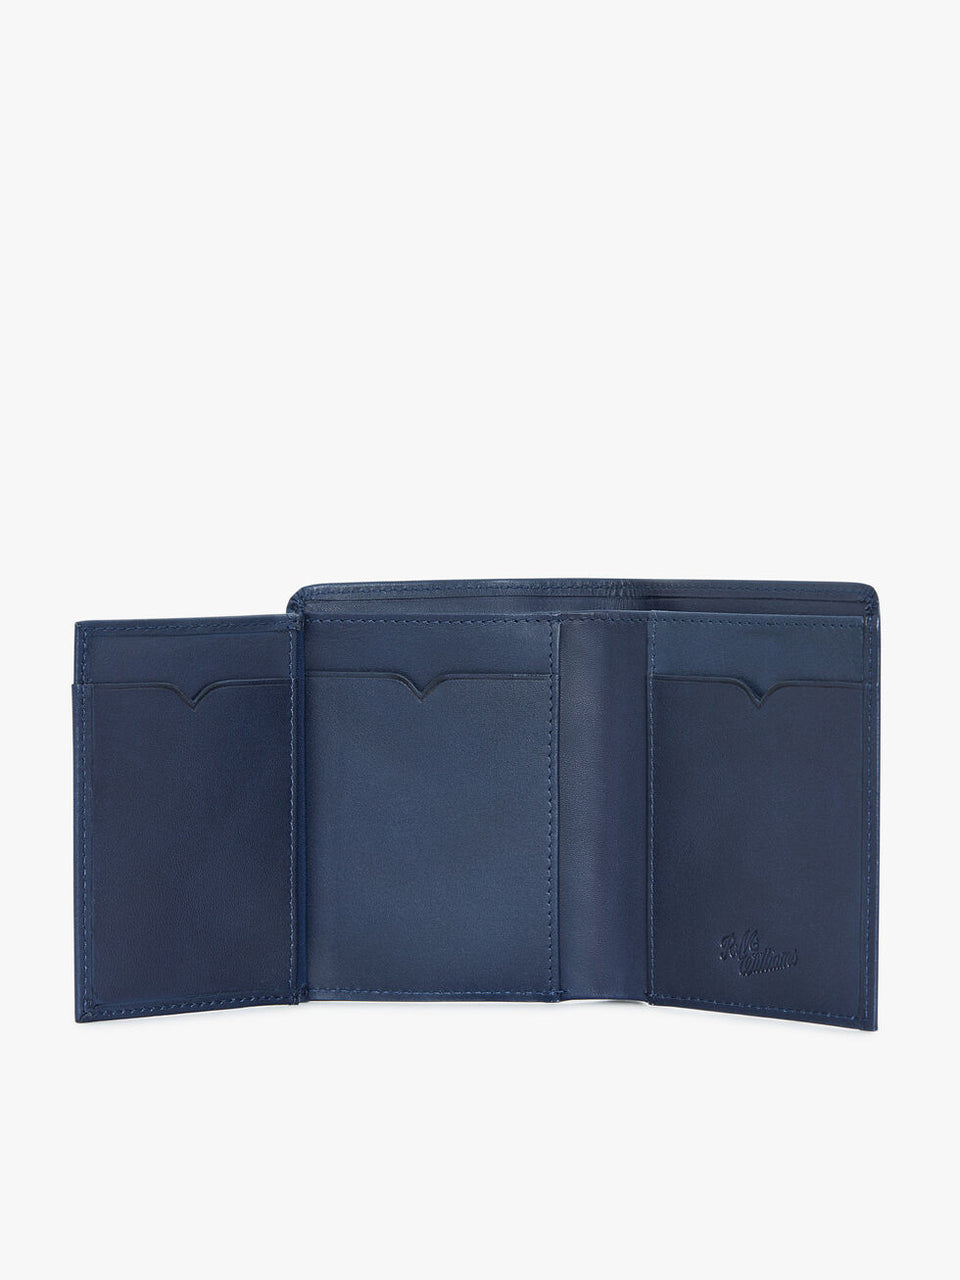 Urban Small Slim Tri Fold